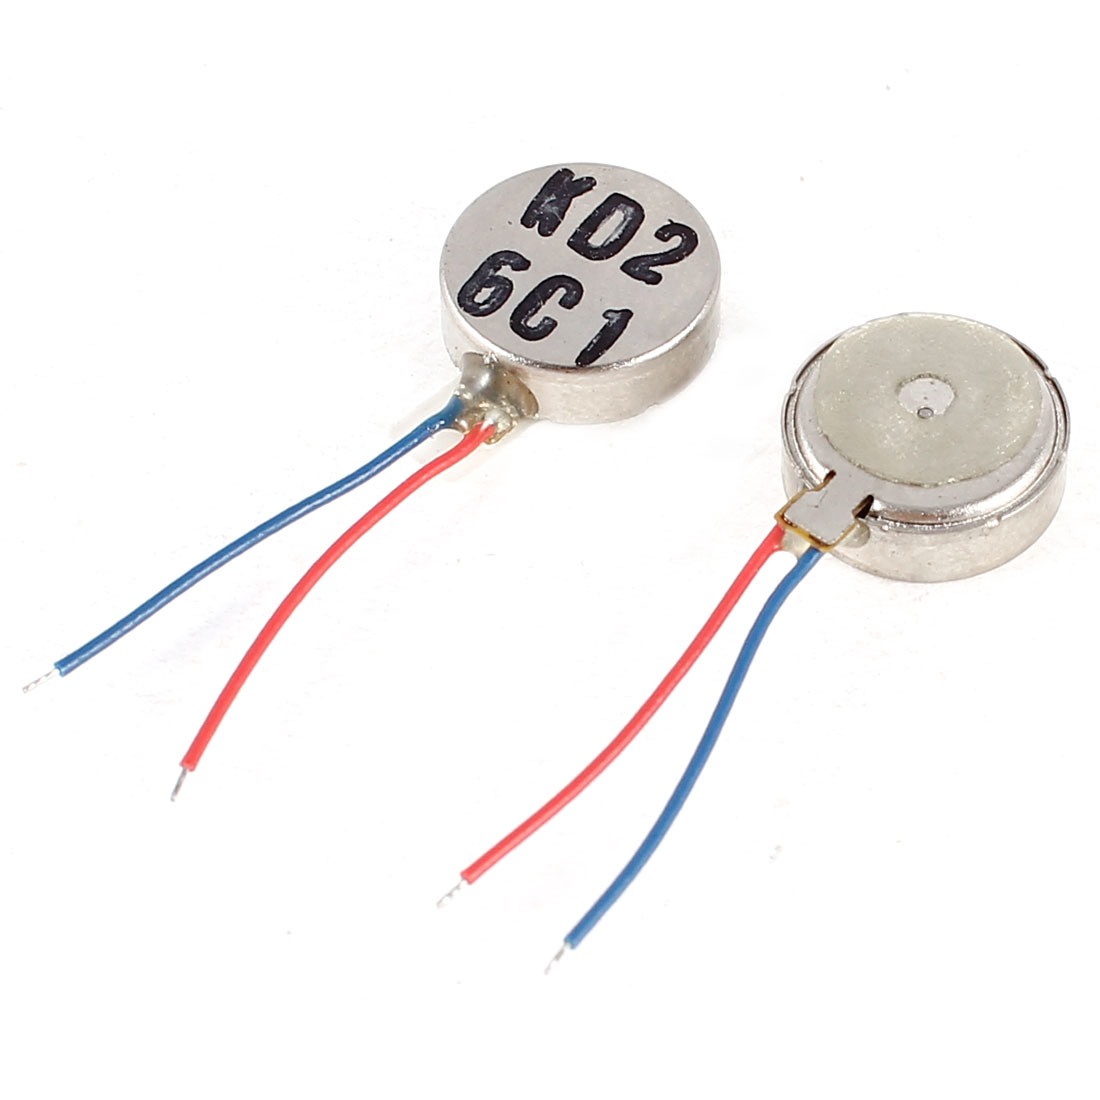 3V DC 2 Leads 10mm x 3.5mm Coin Mobile Phone Vibration Motor Repair Parts 2 Pcs